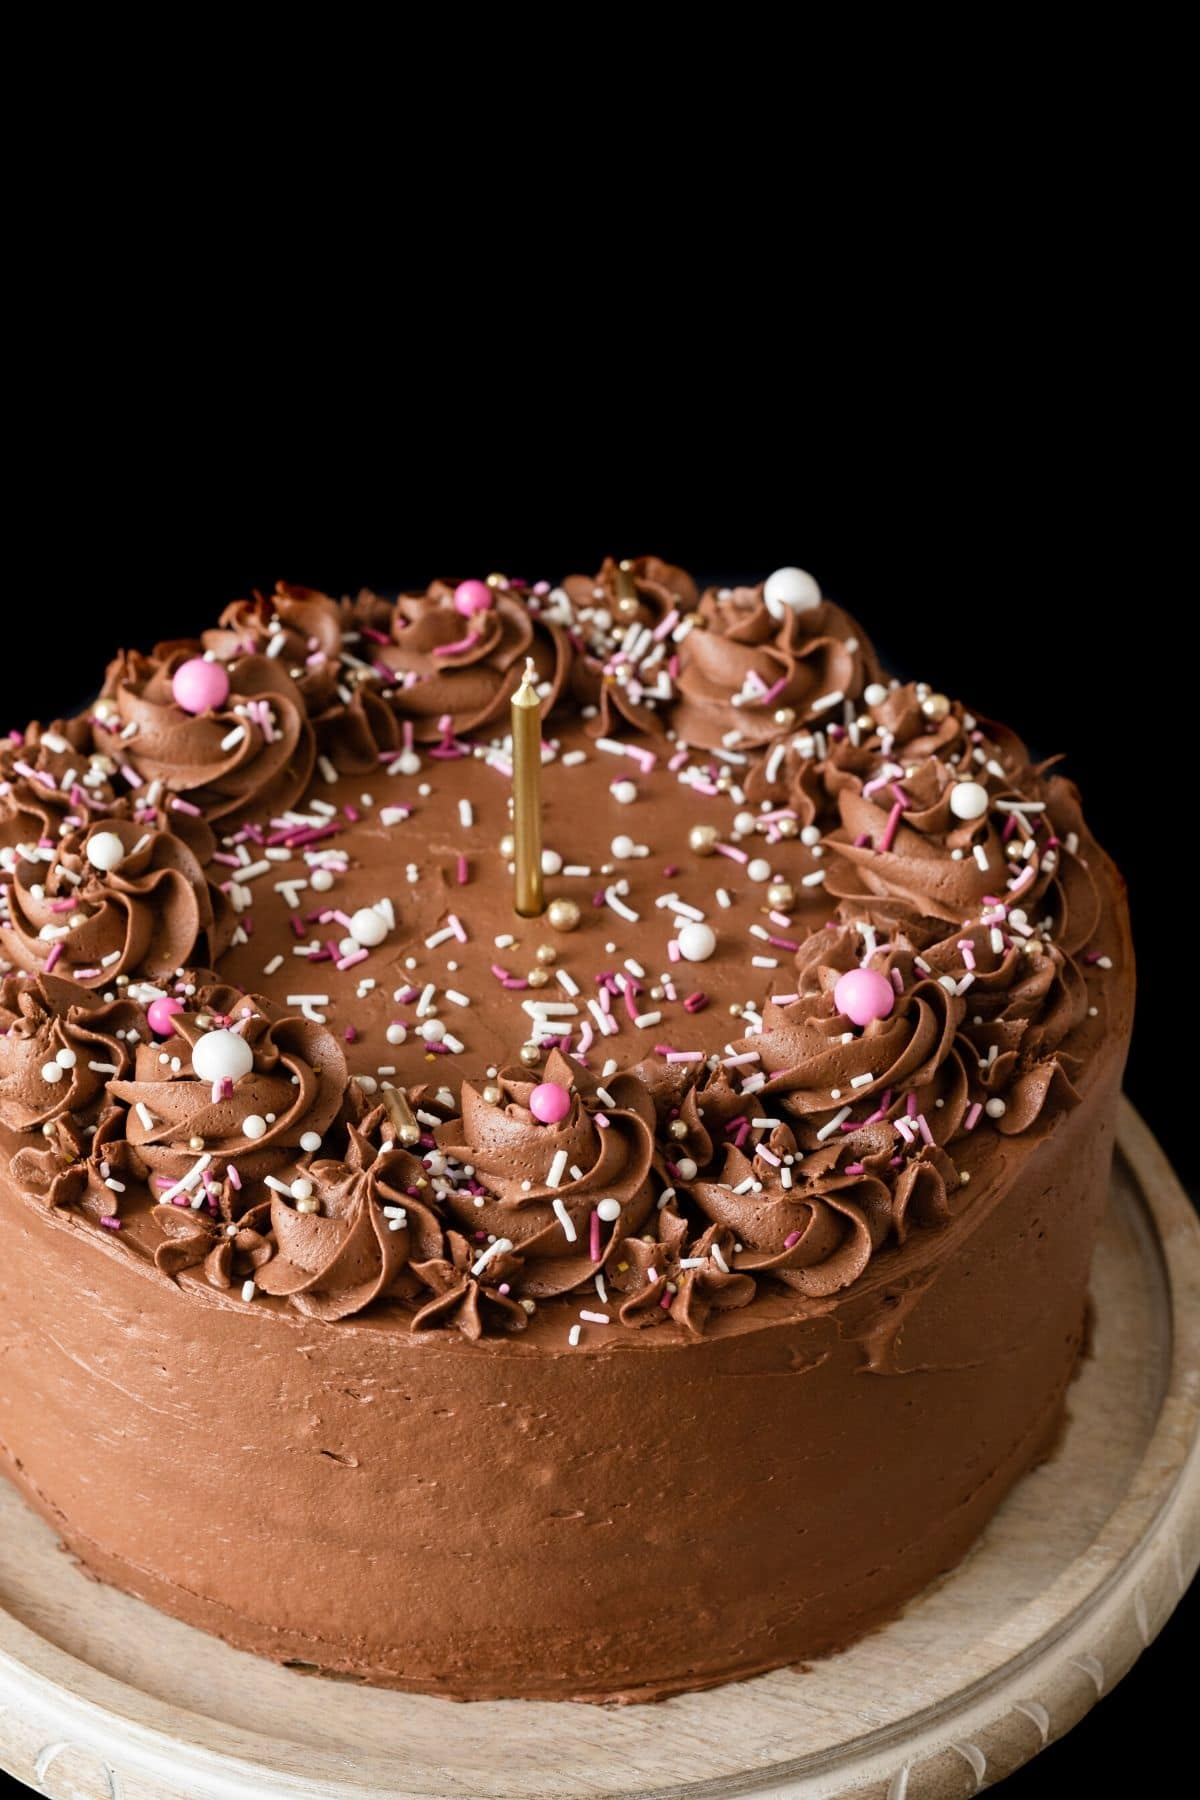 Angled view of homemade birthday cake with chocolate frosting and sprinkles.